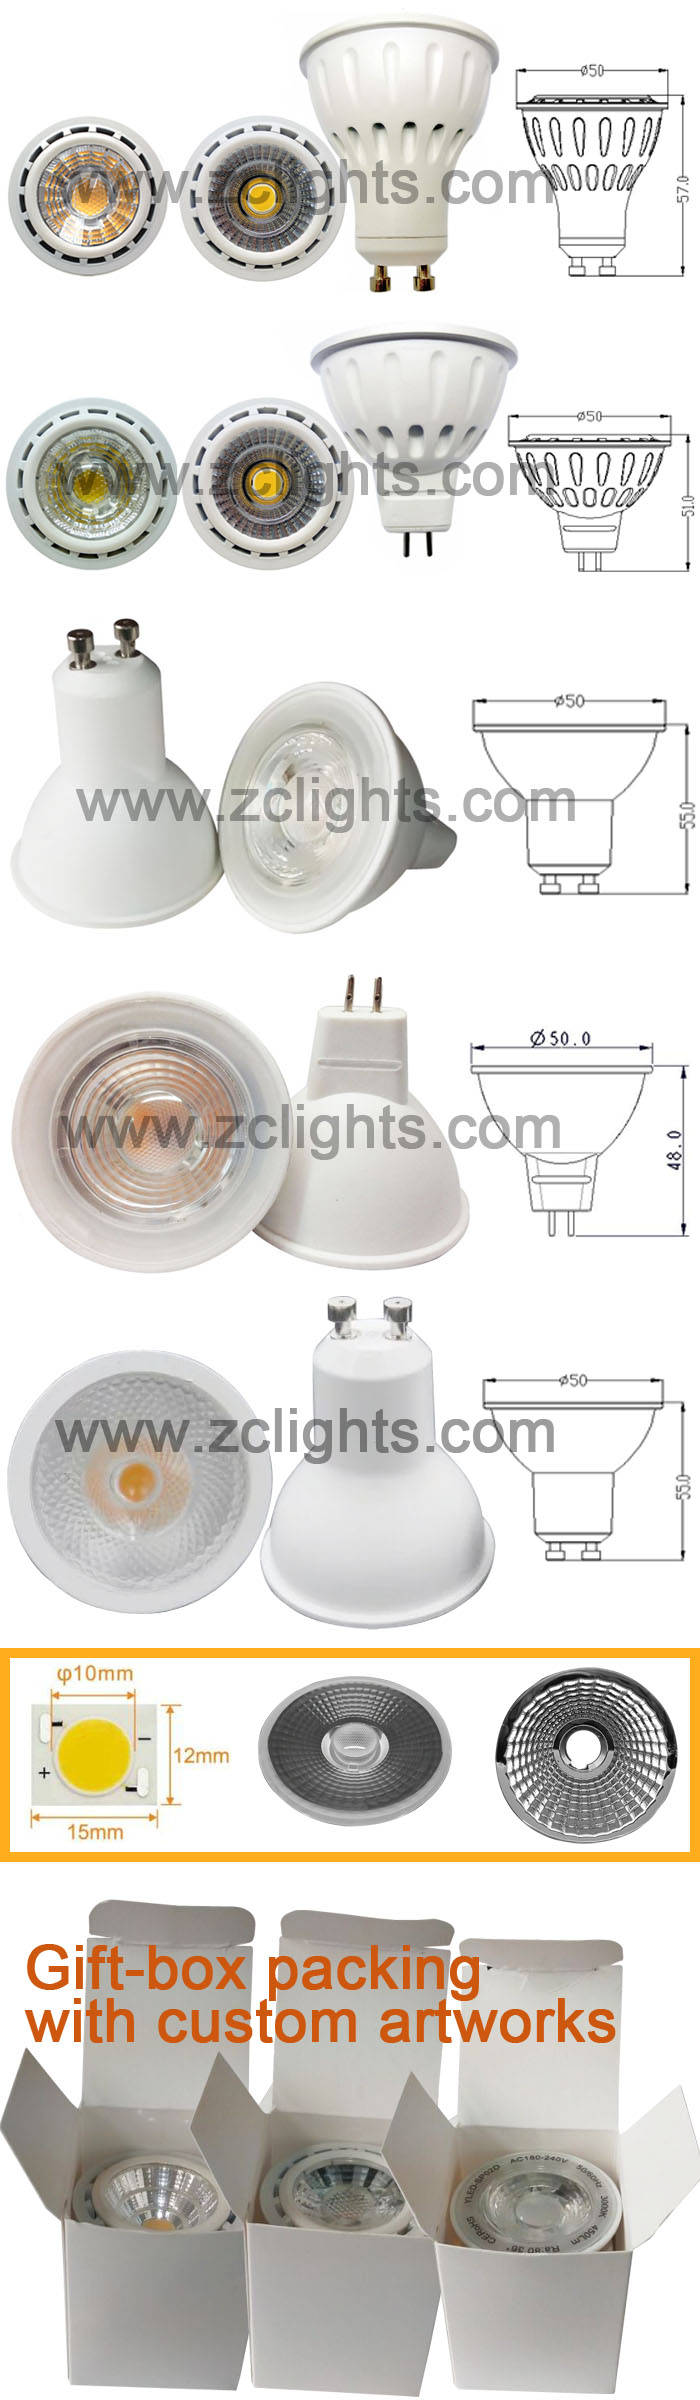 6W Gu5.3 LED Spot Light LED Lamp (MR16-A6)